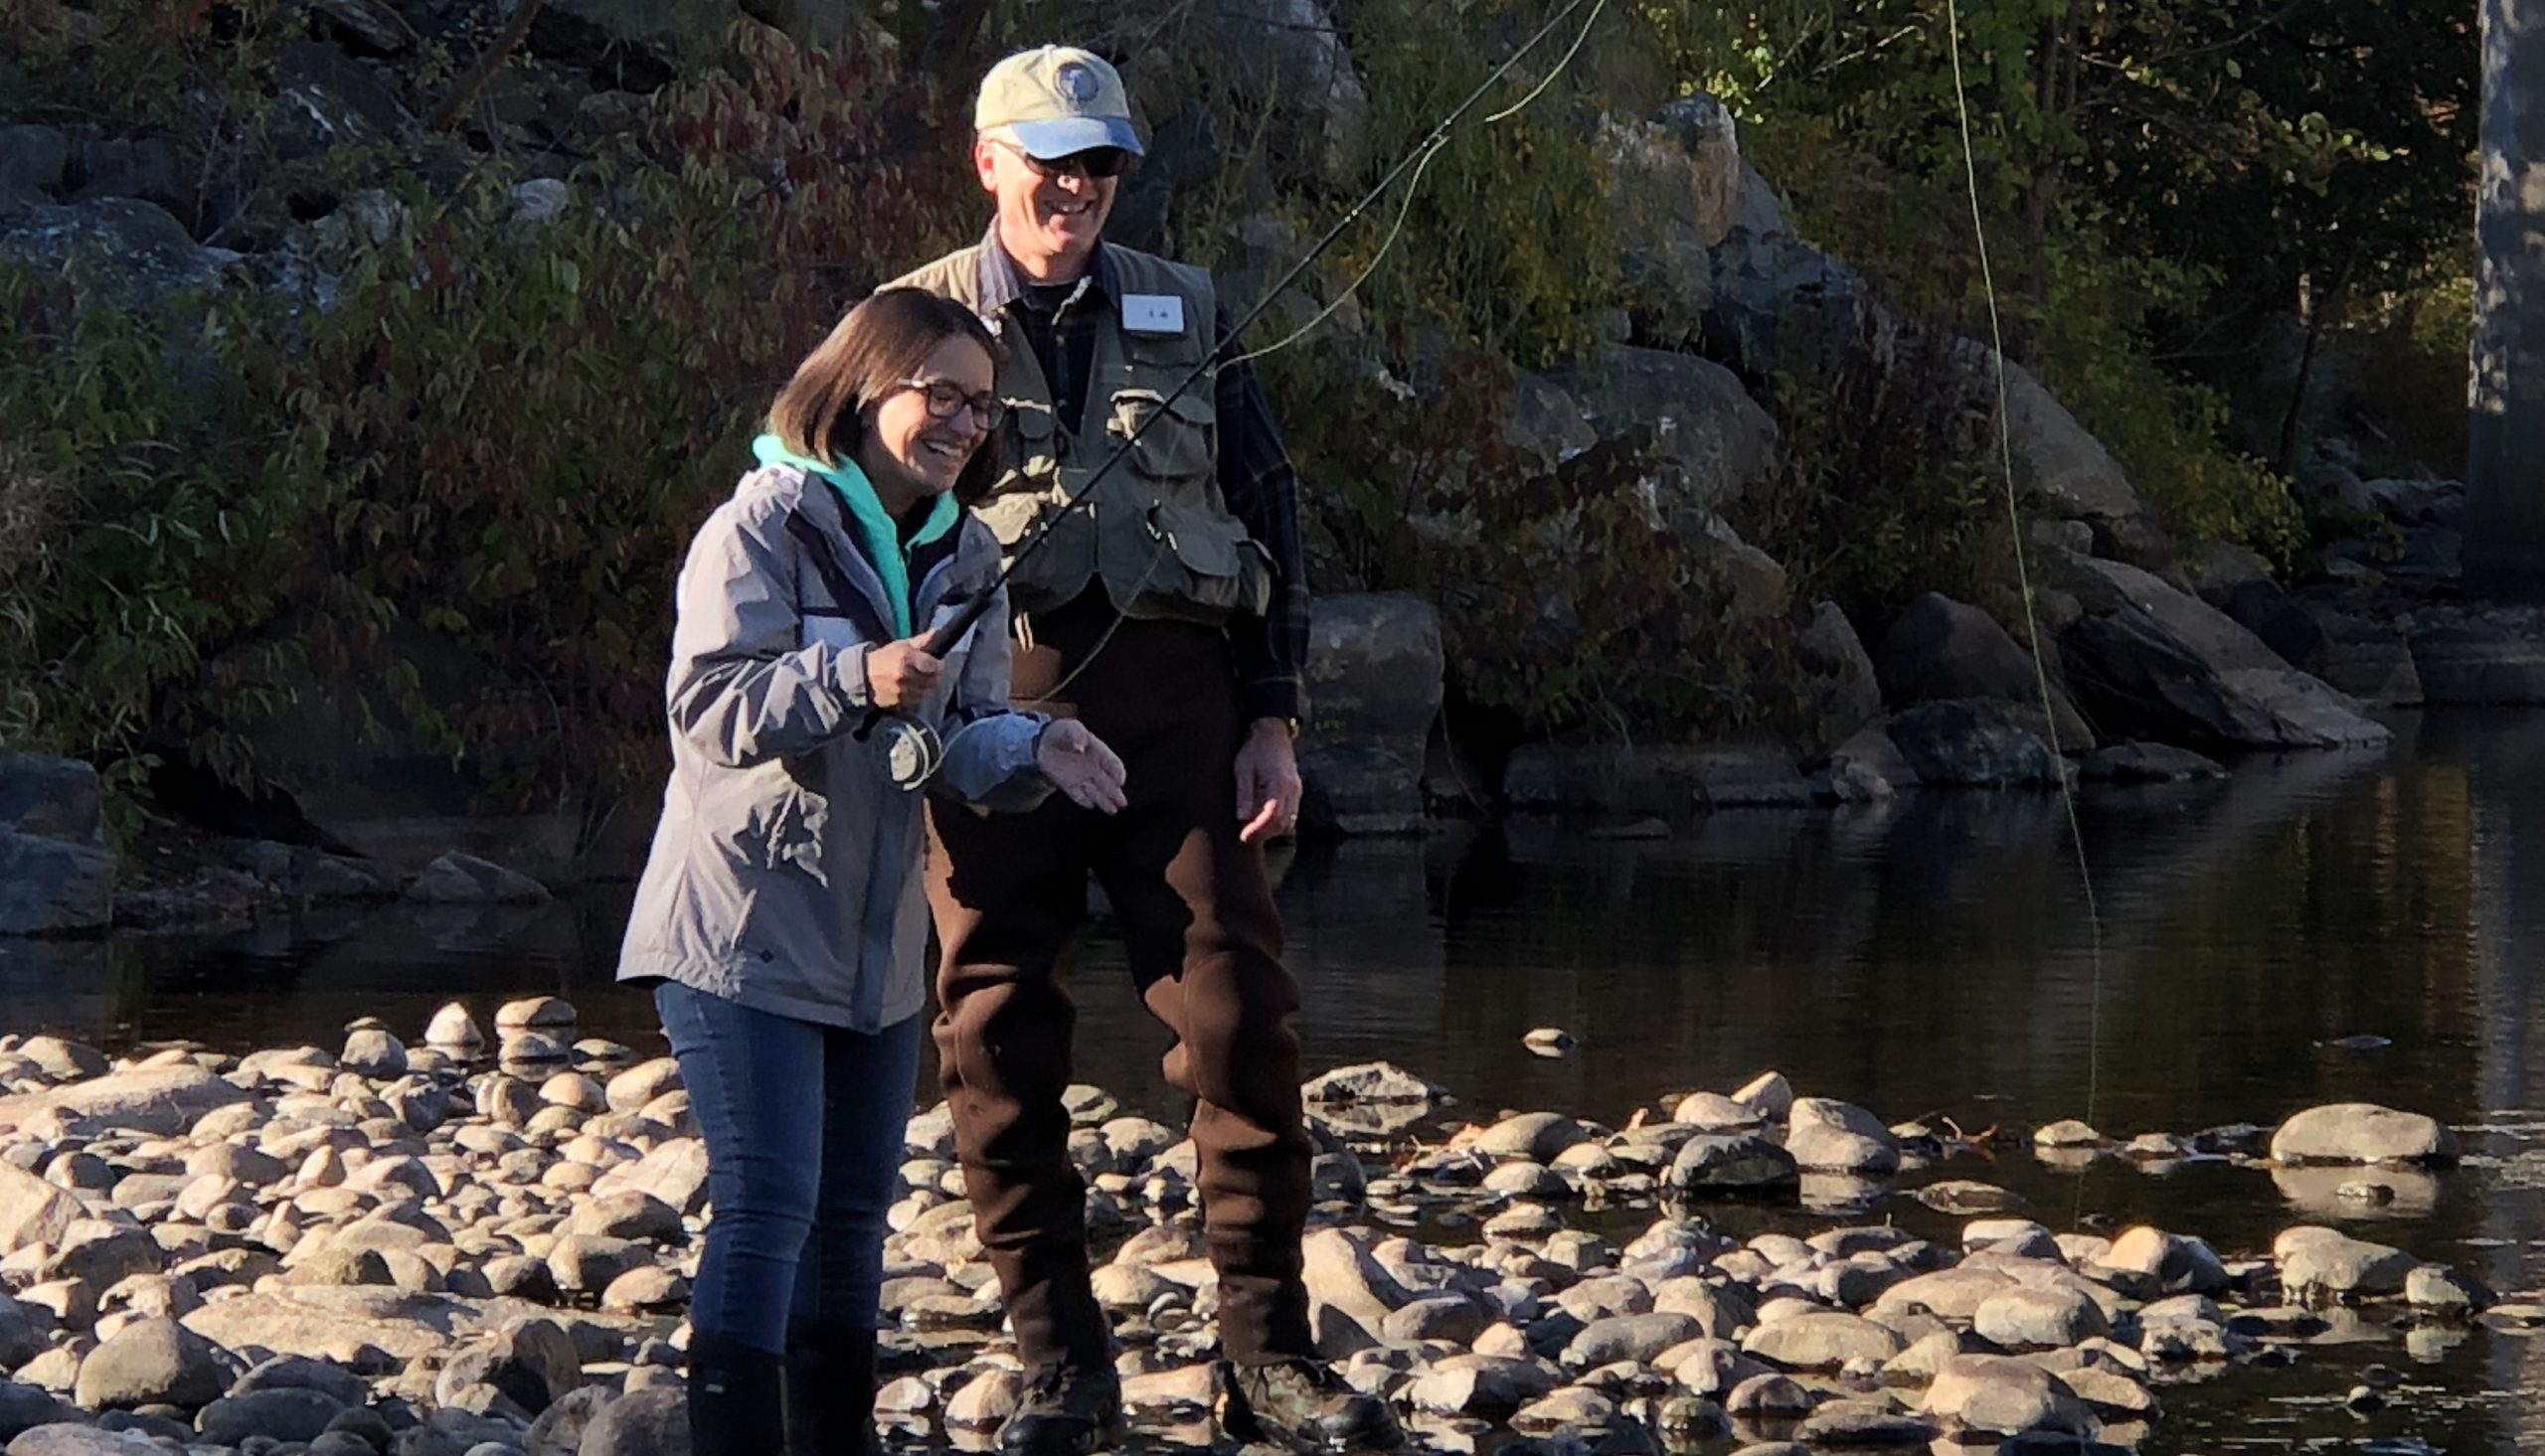 Fellow wellness activity – Fly Fishing lessons in the Farmington River